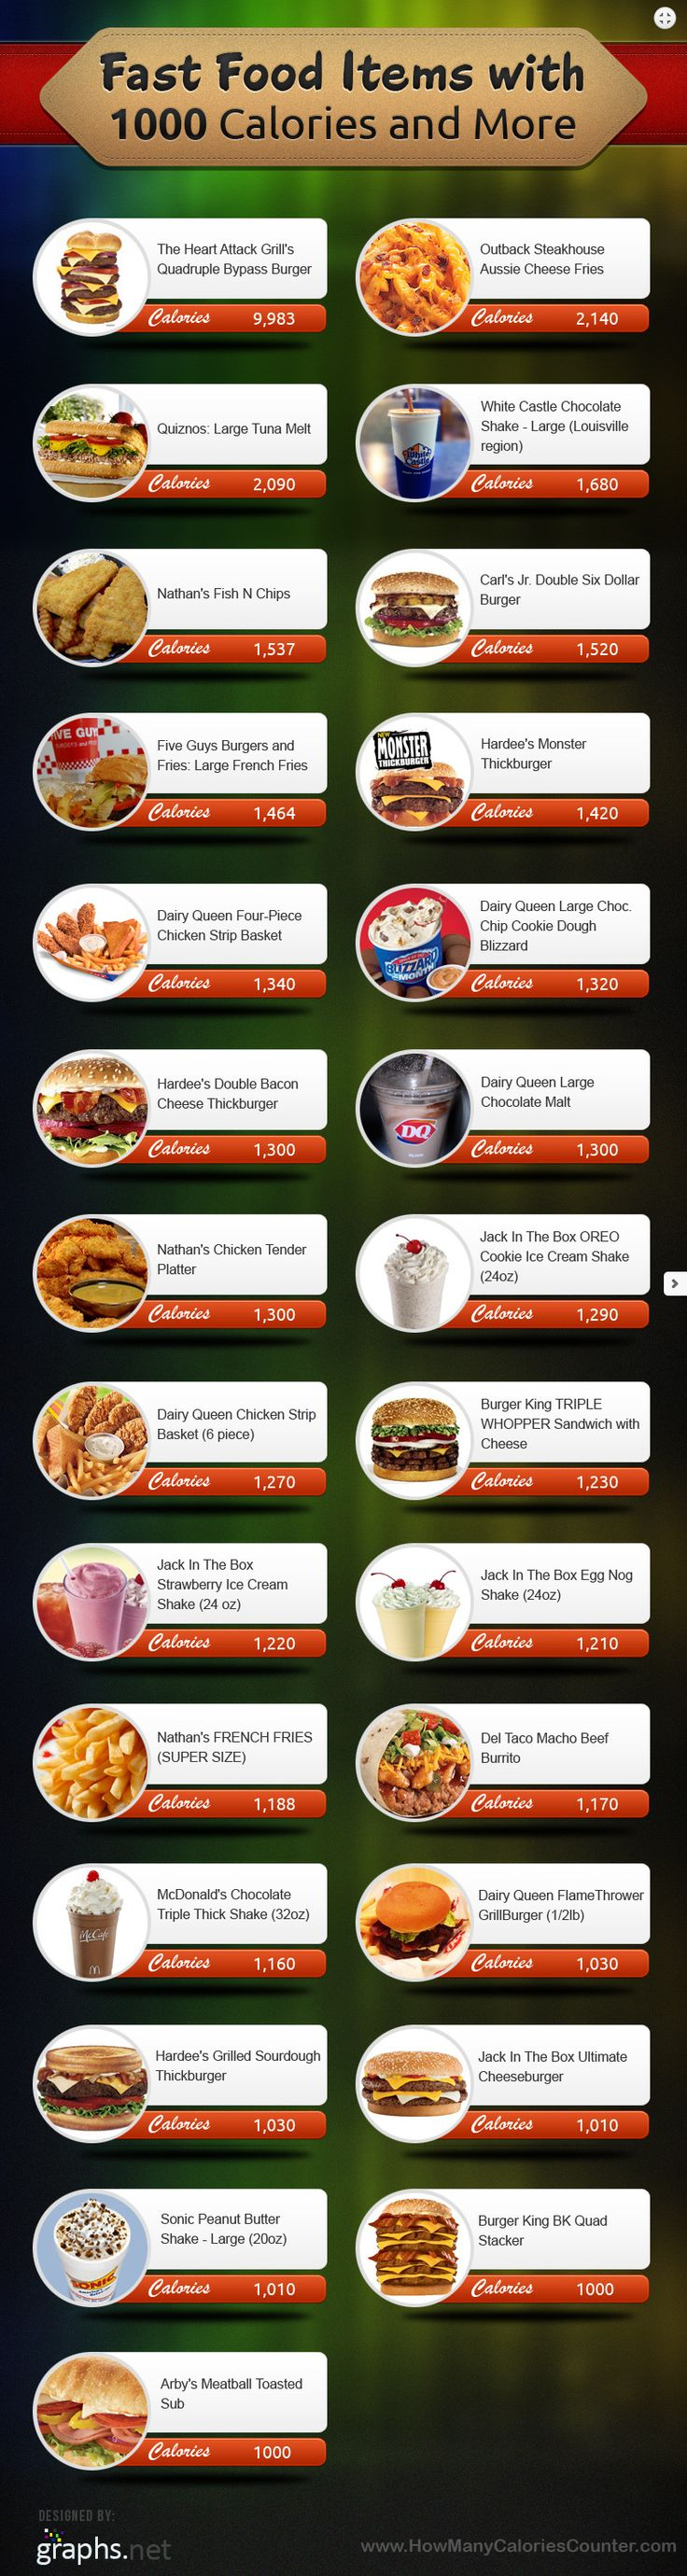 fast food with more than 1000 calories #infographic